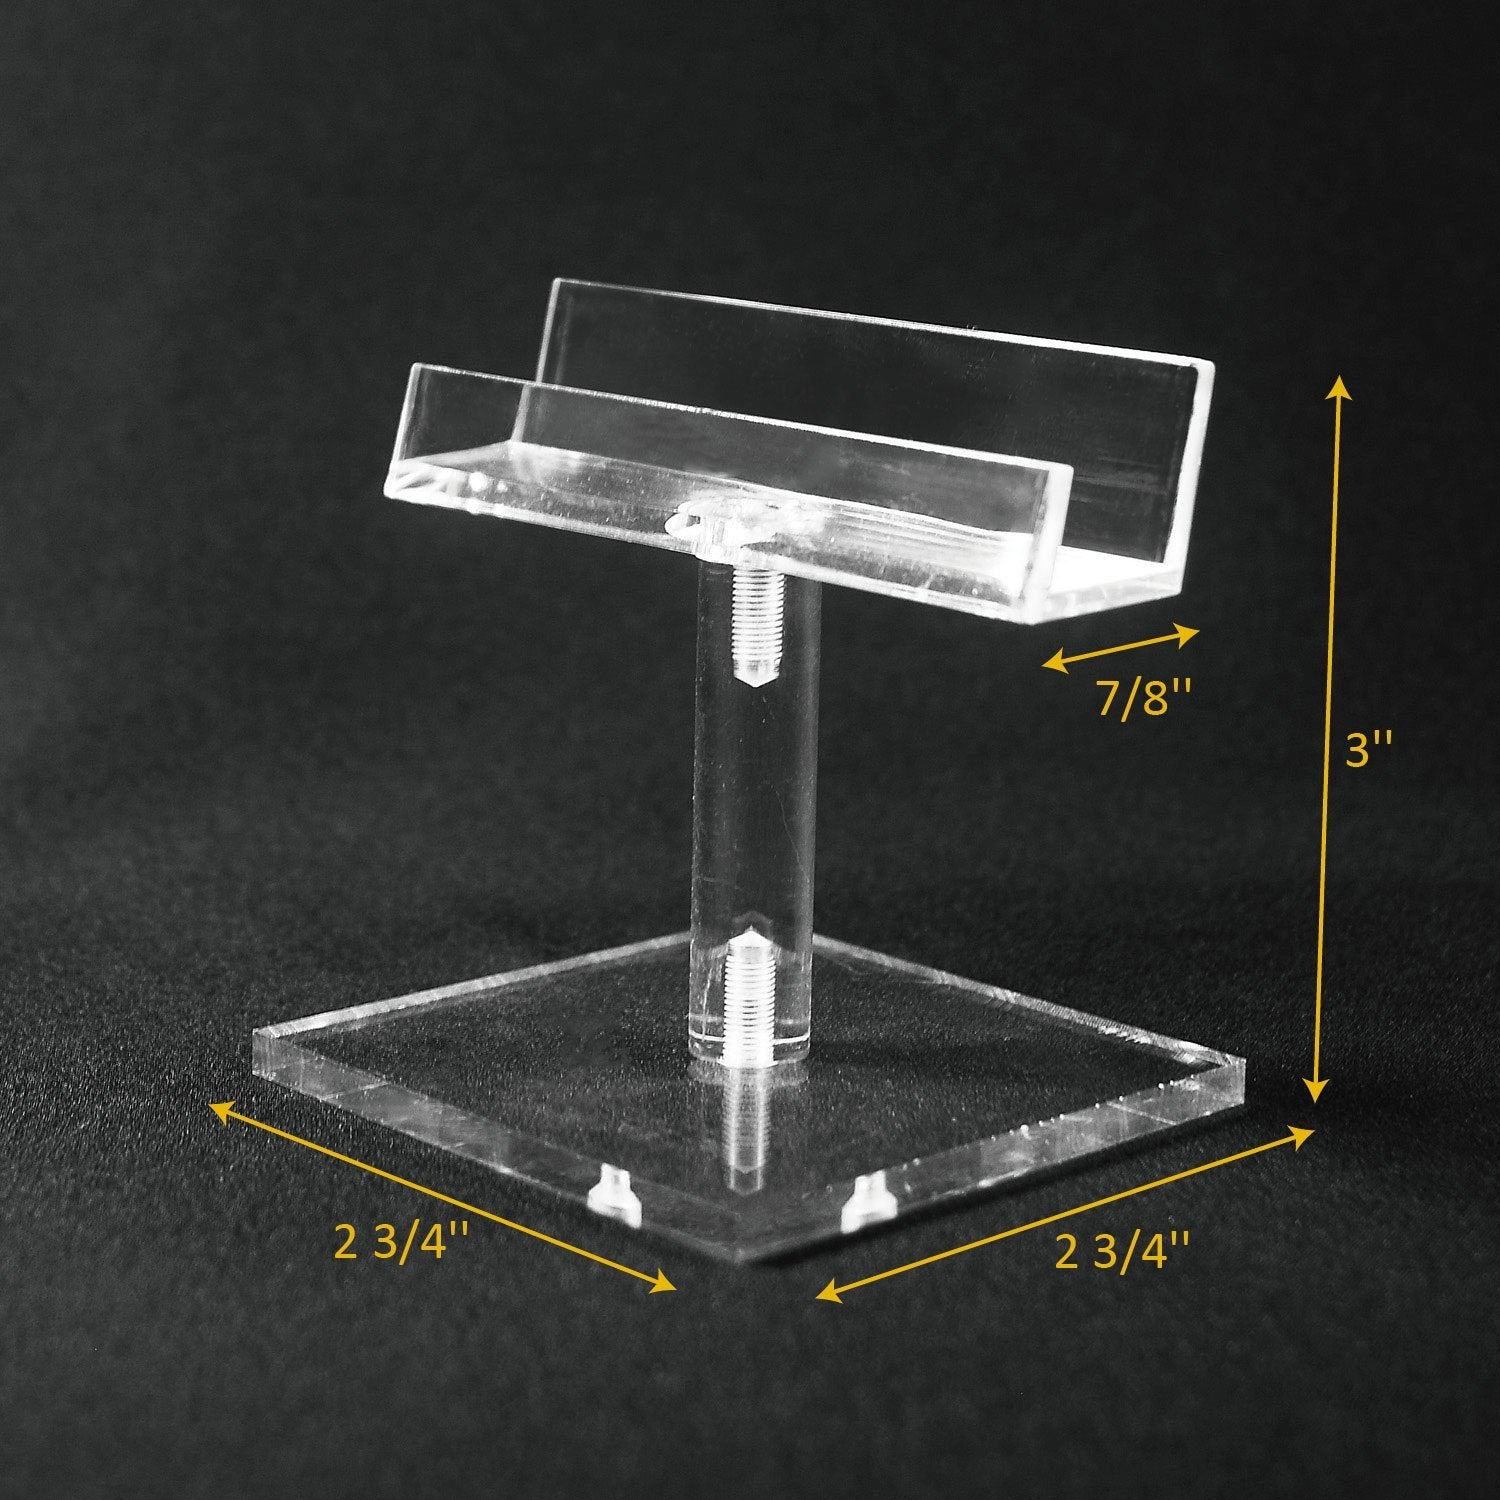 #AC-003 Acrylic Single Eyeglass Frame Stand | APEX International